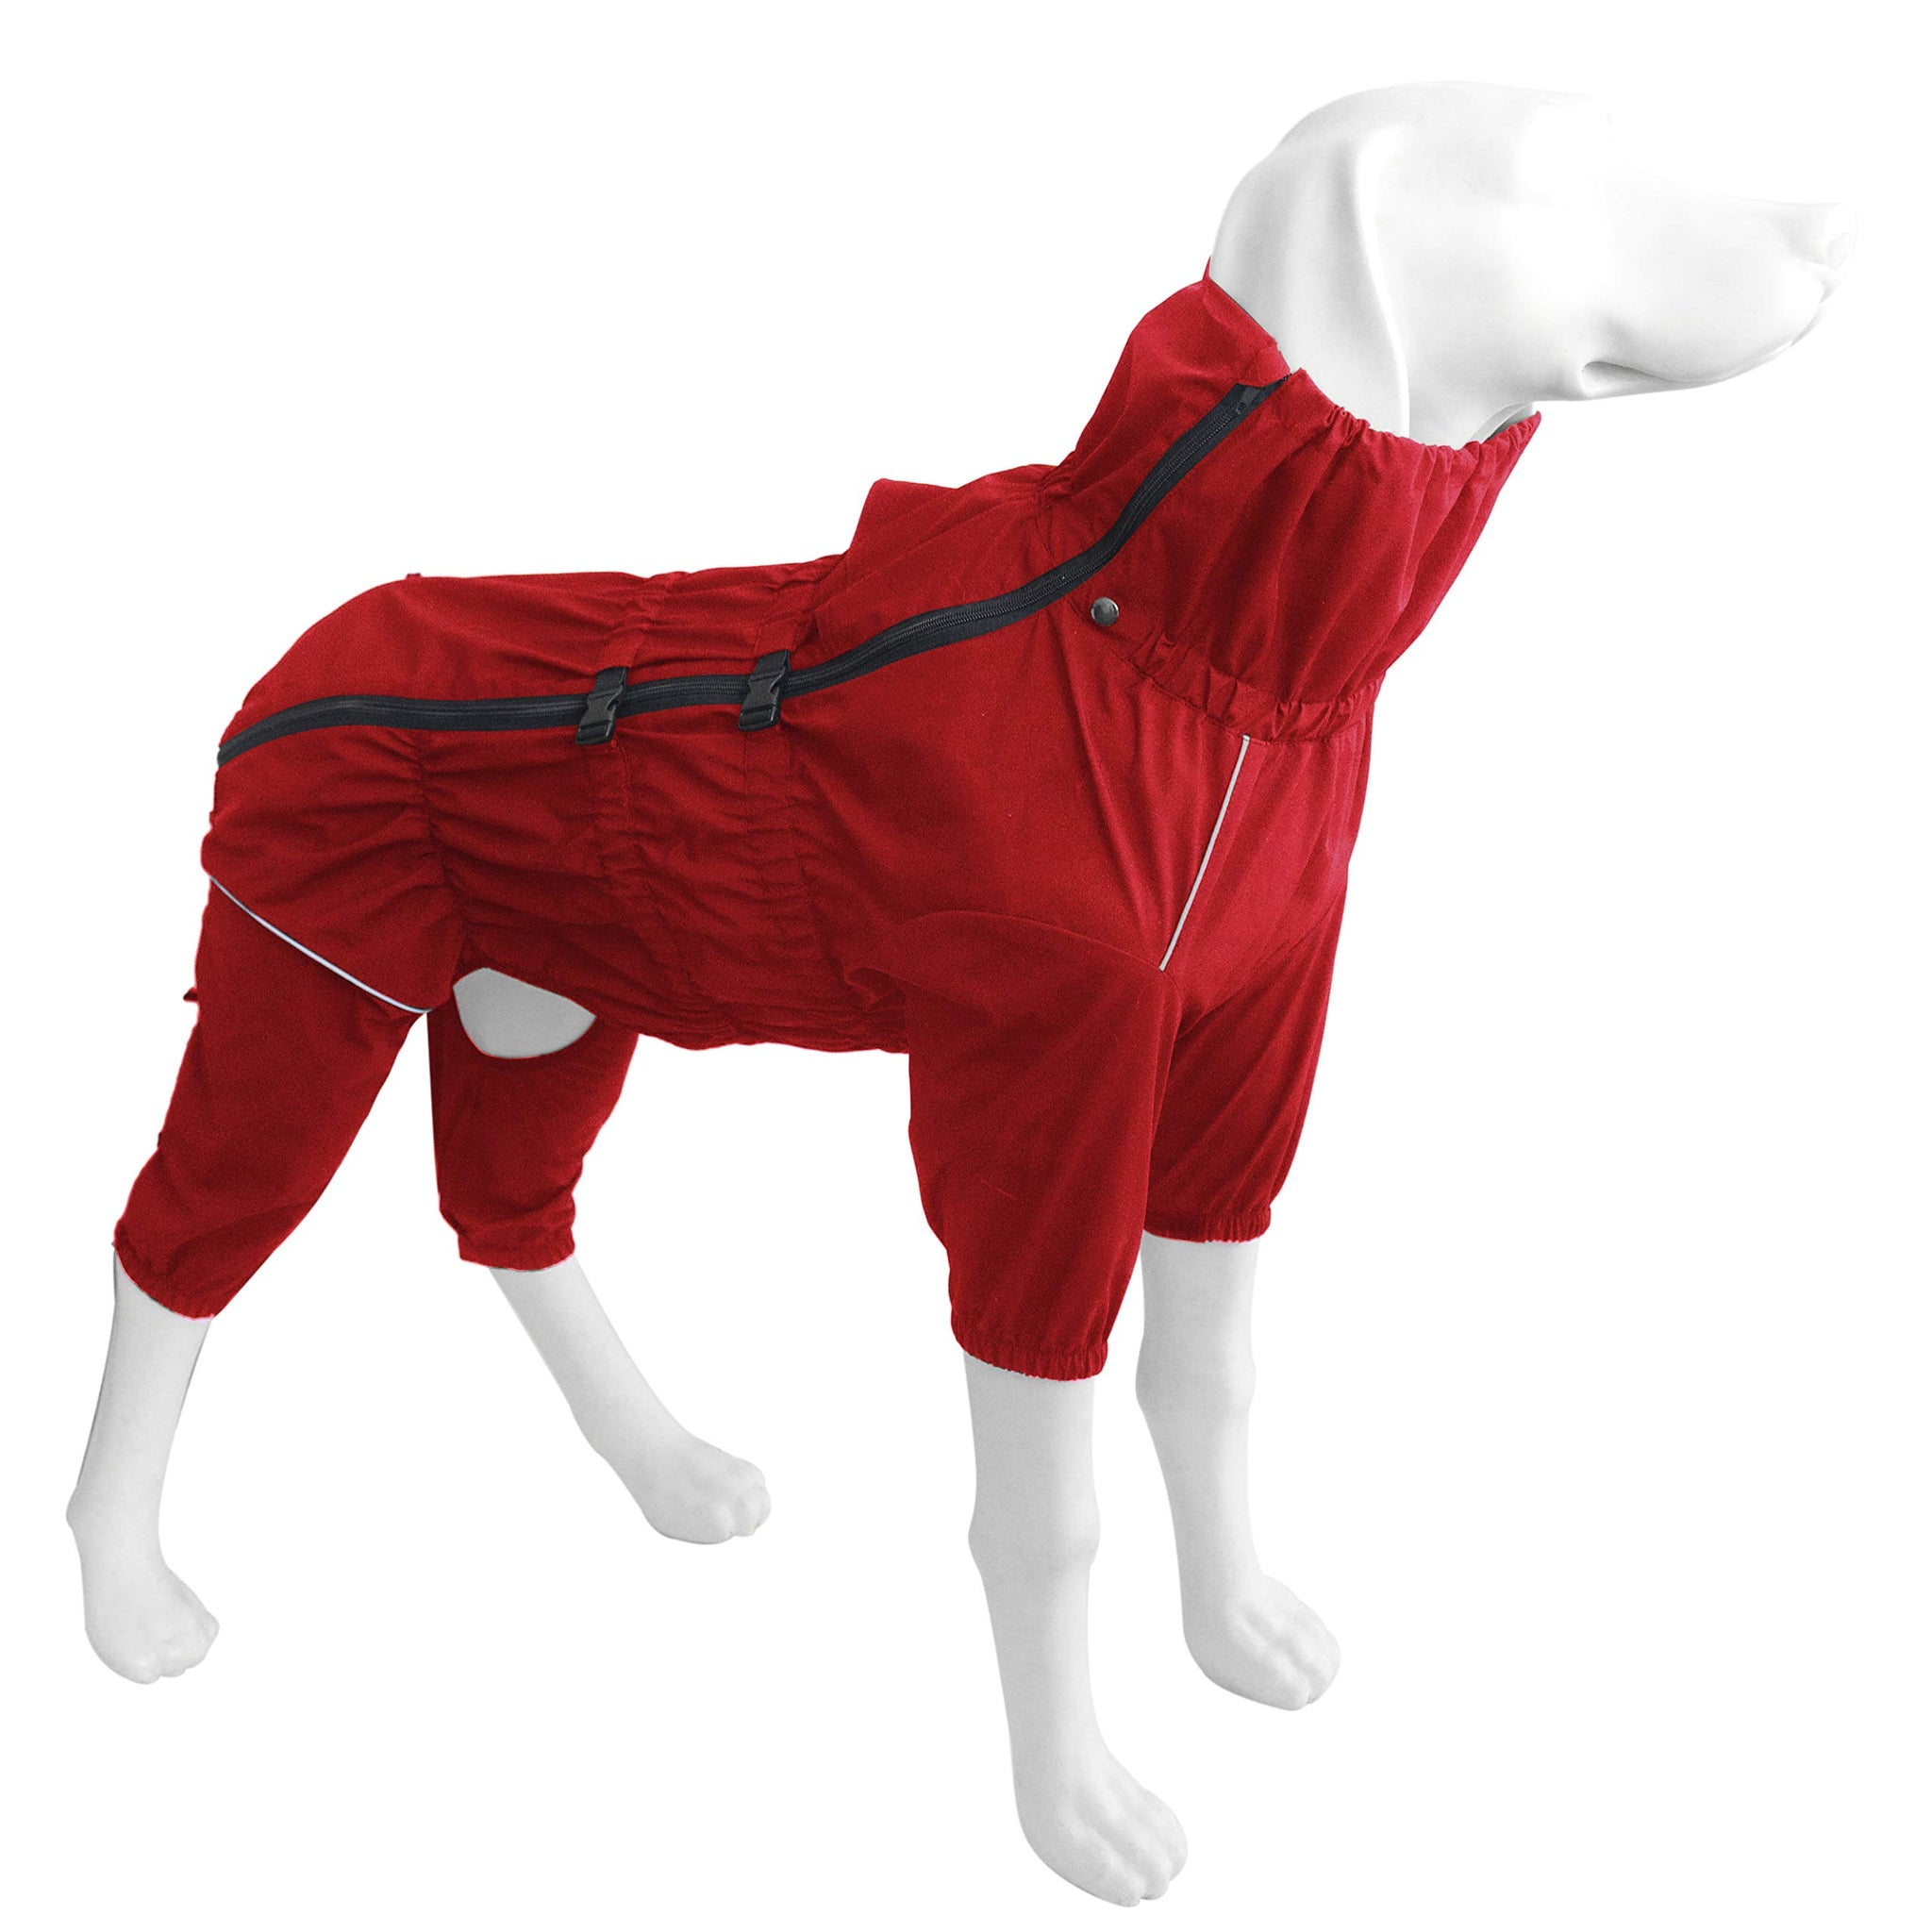 Dr.NONO Dog Raincoat with Zipper and Reflective Strip,Adjustable Waterproof Jacket,Breathable Dog Poncho for Medium Large Dog